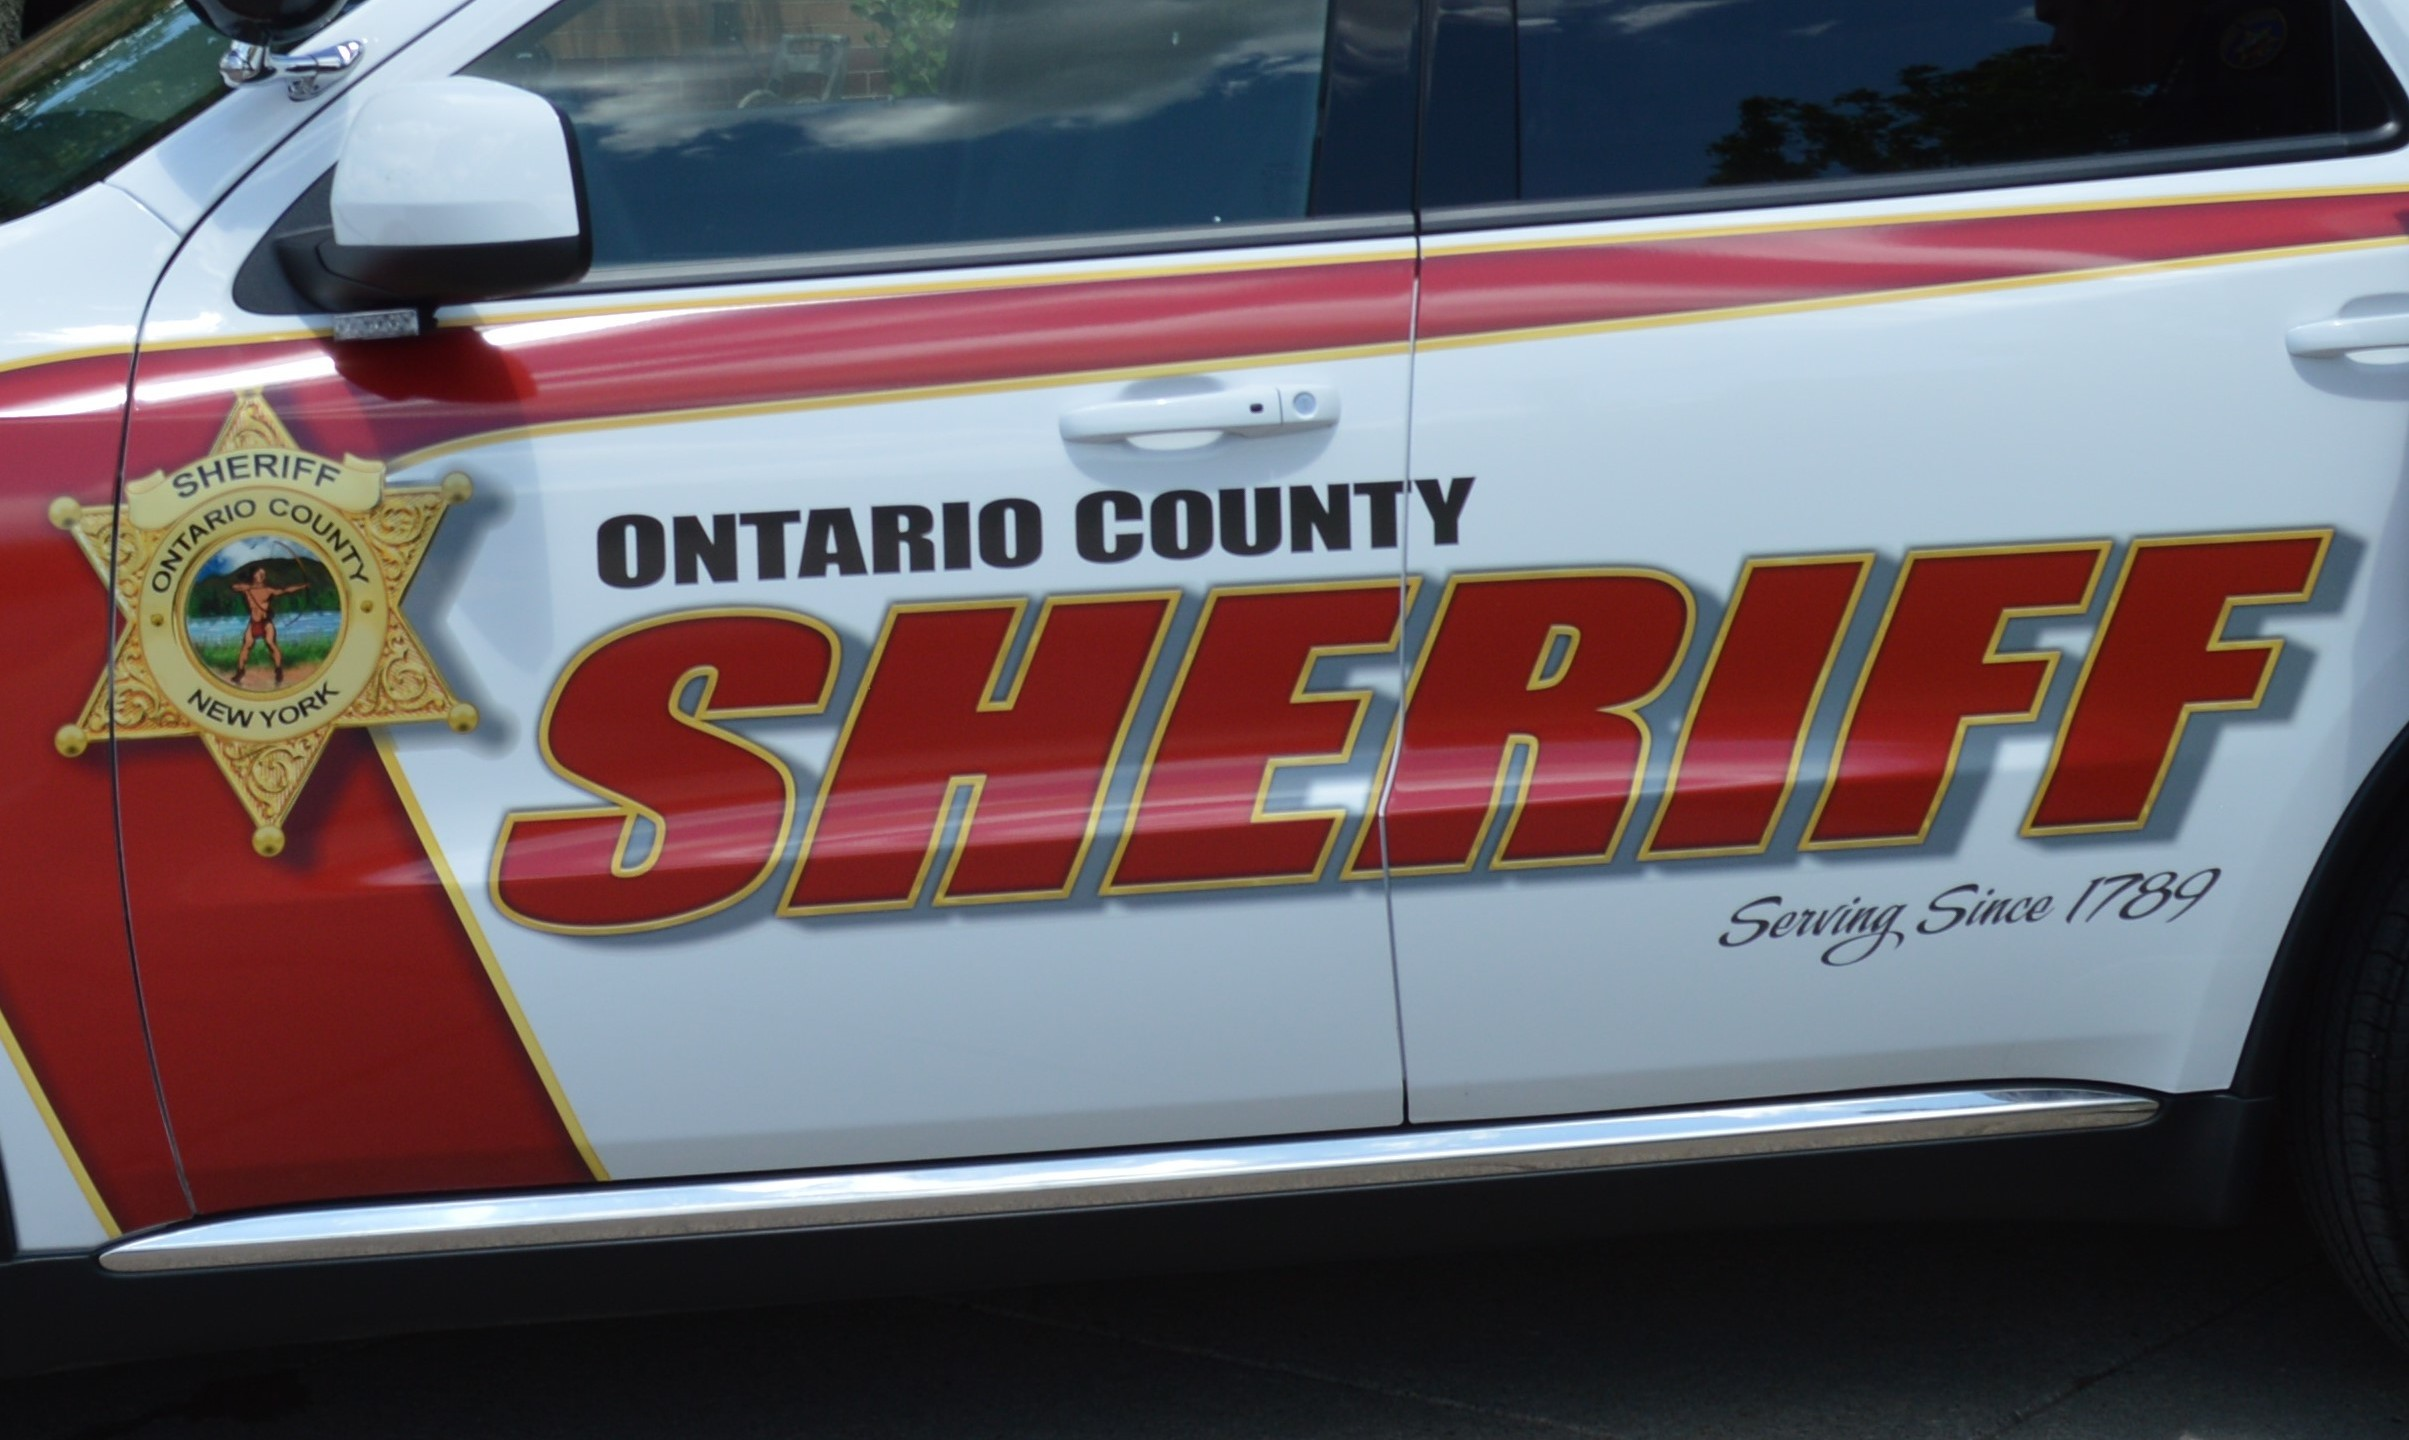 Ontario sheriff new graphics 1 mcu_1560353794327.jpg.jpg